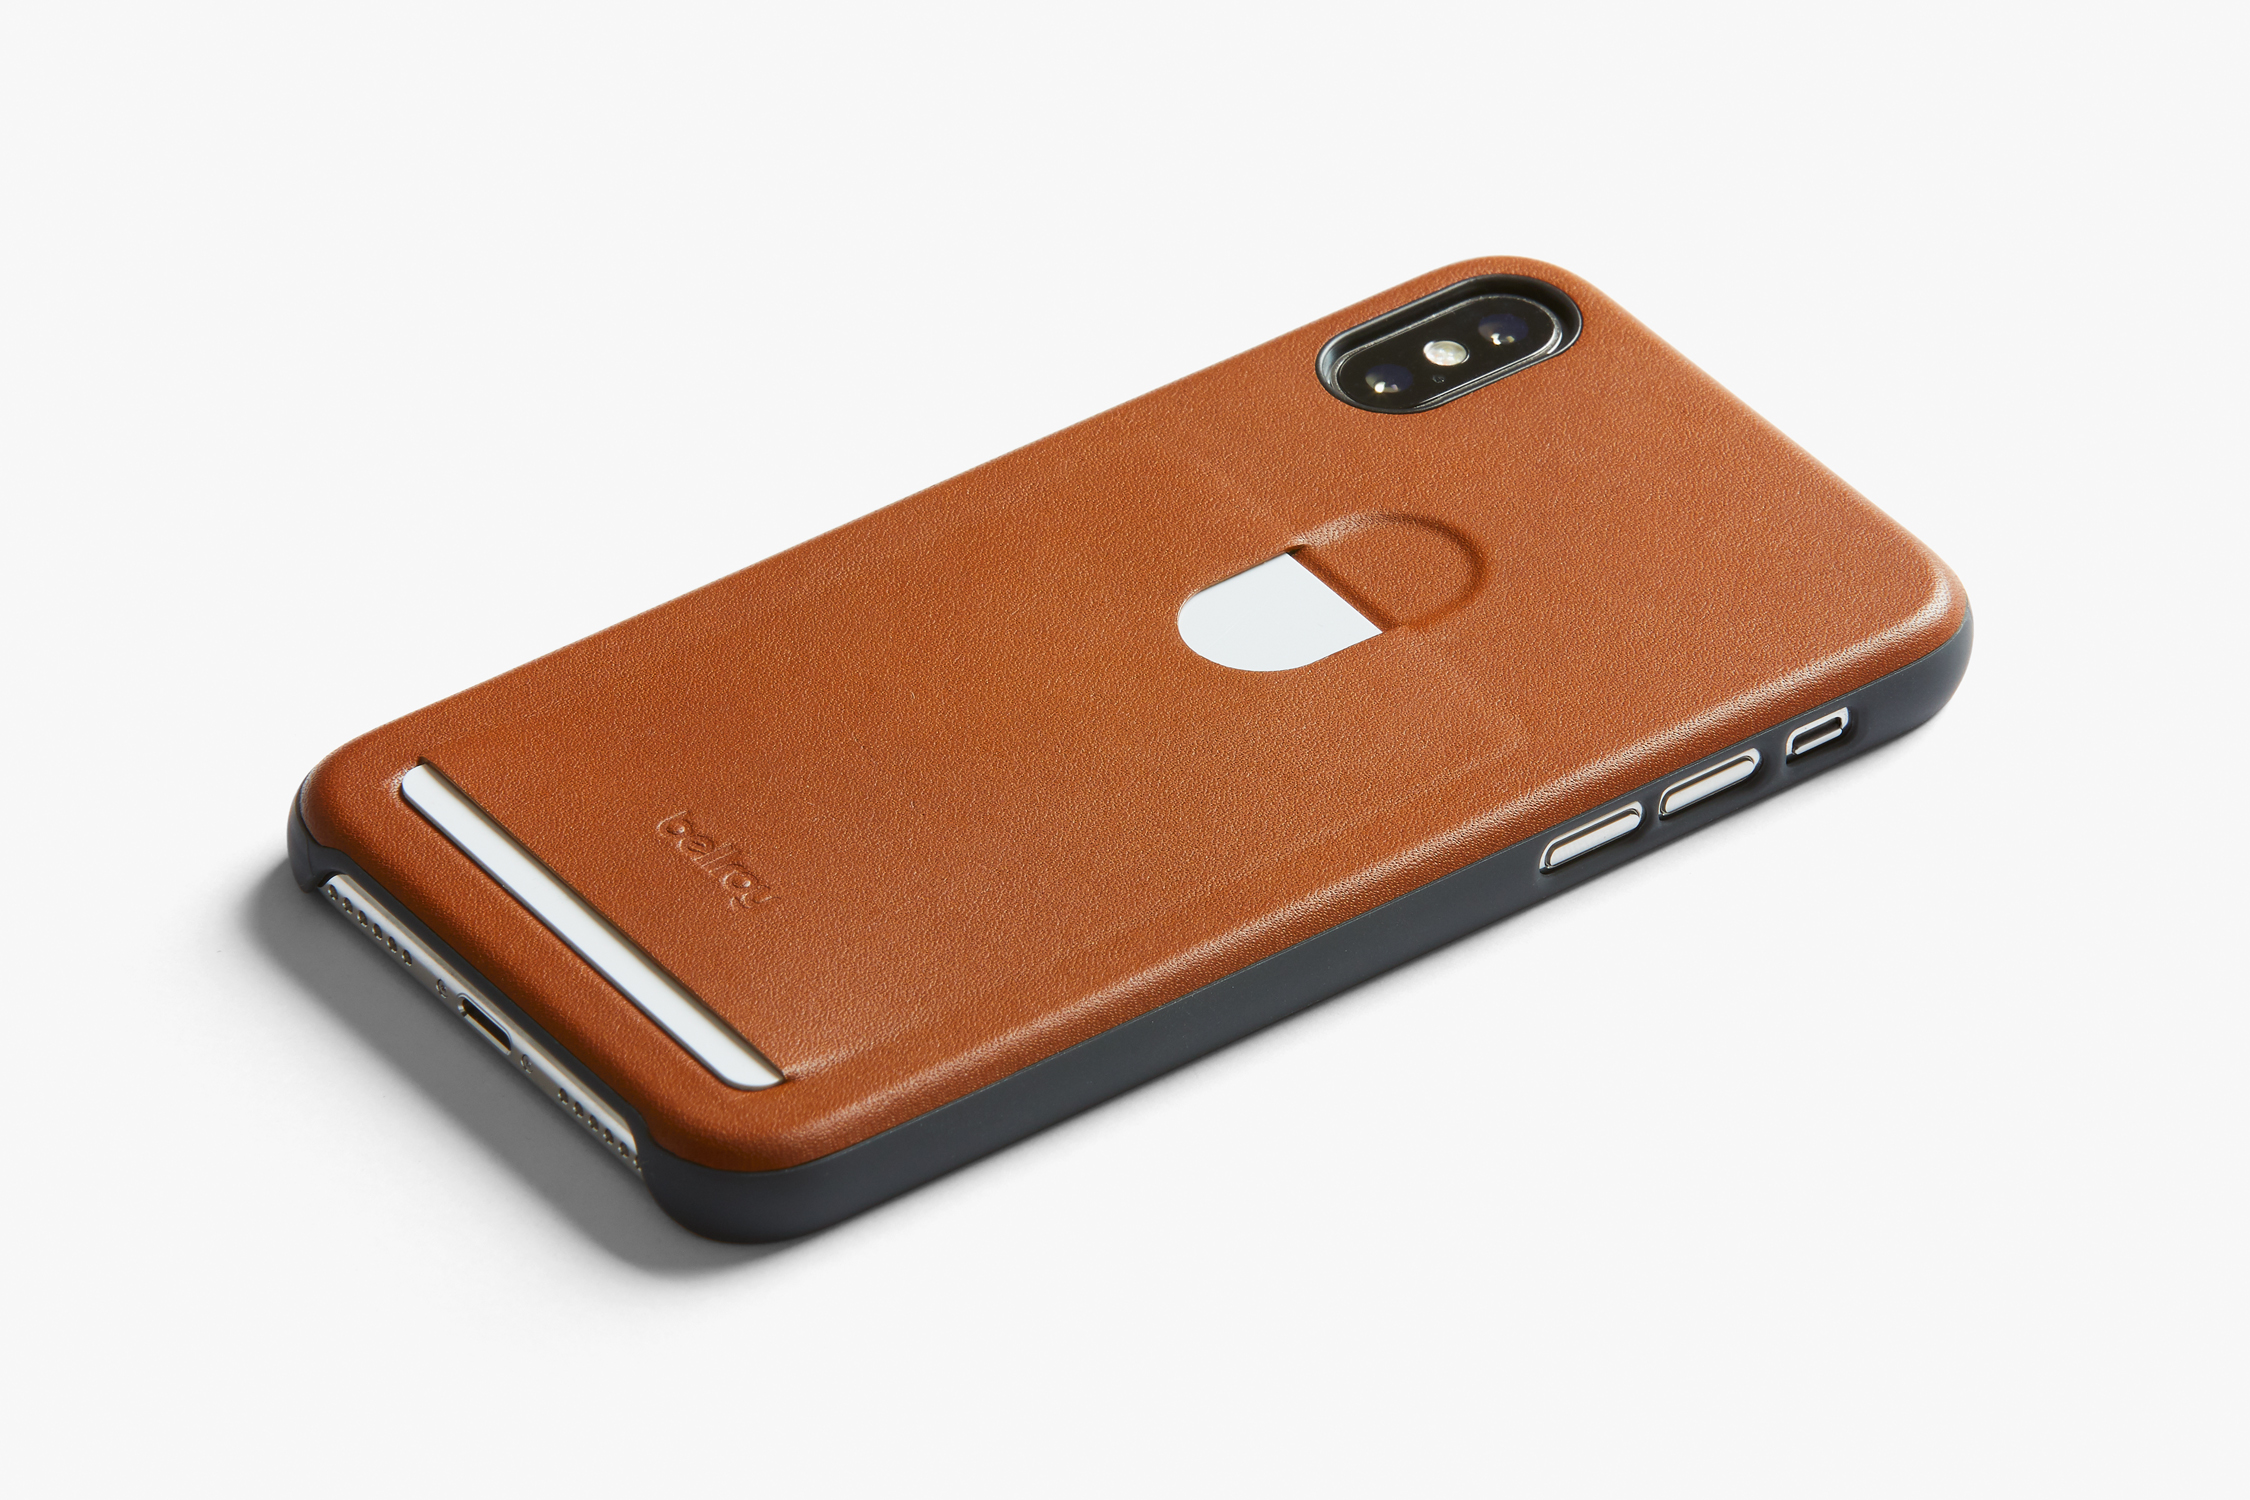 bellroy phone case iphone 8